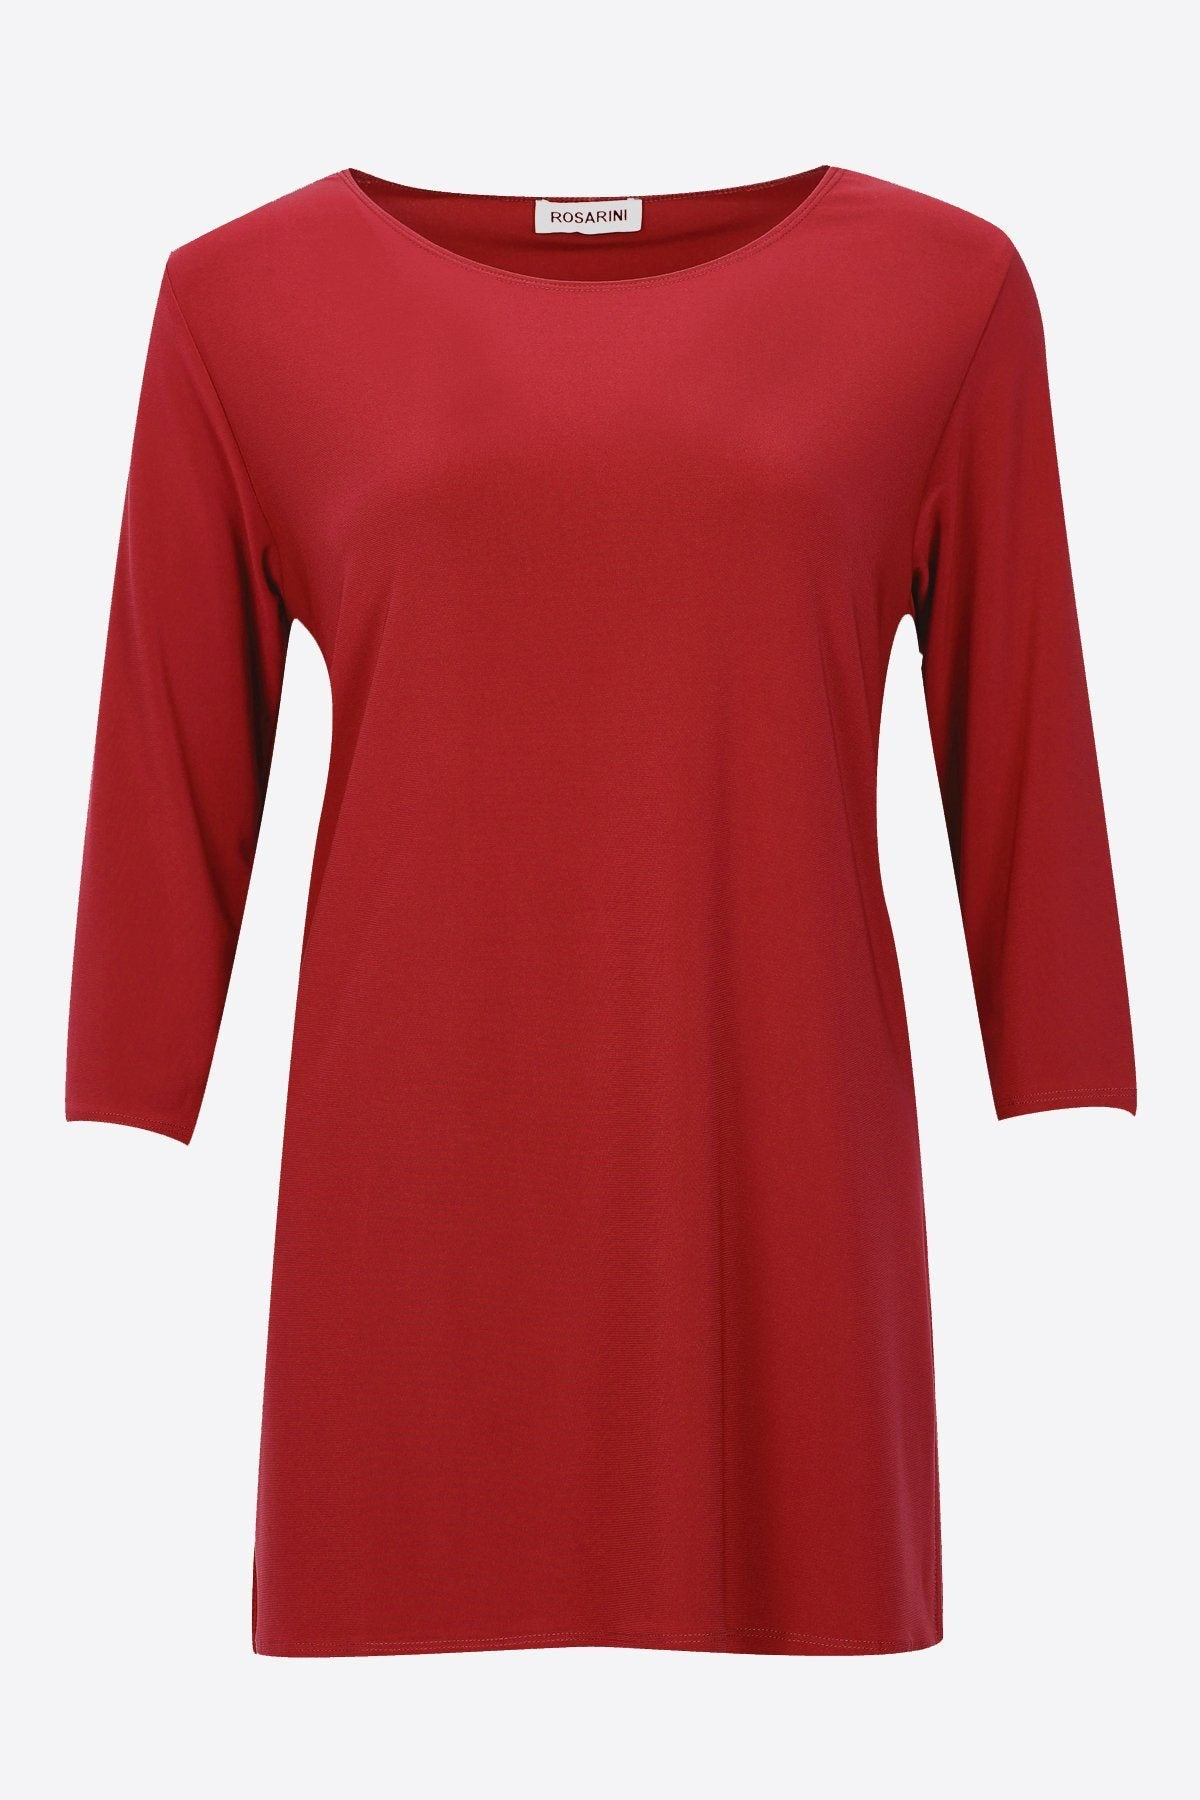 3/4 Sleeve Side Splits Boat Neck Top dark red